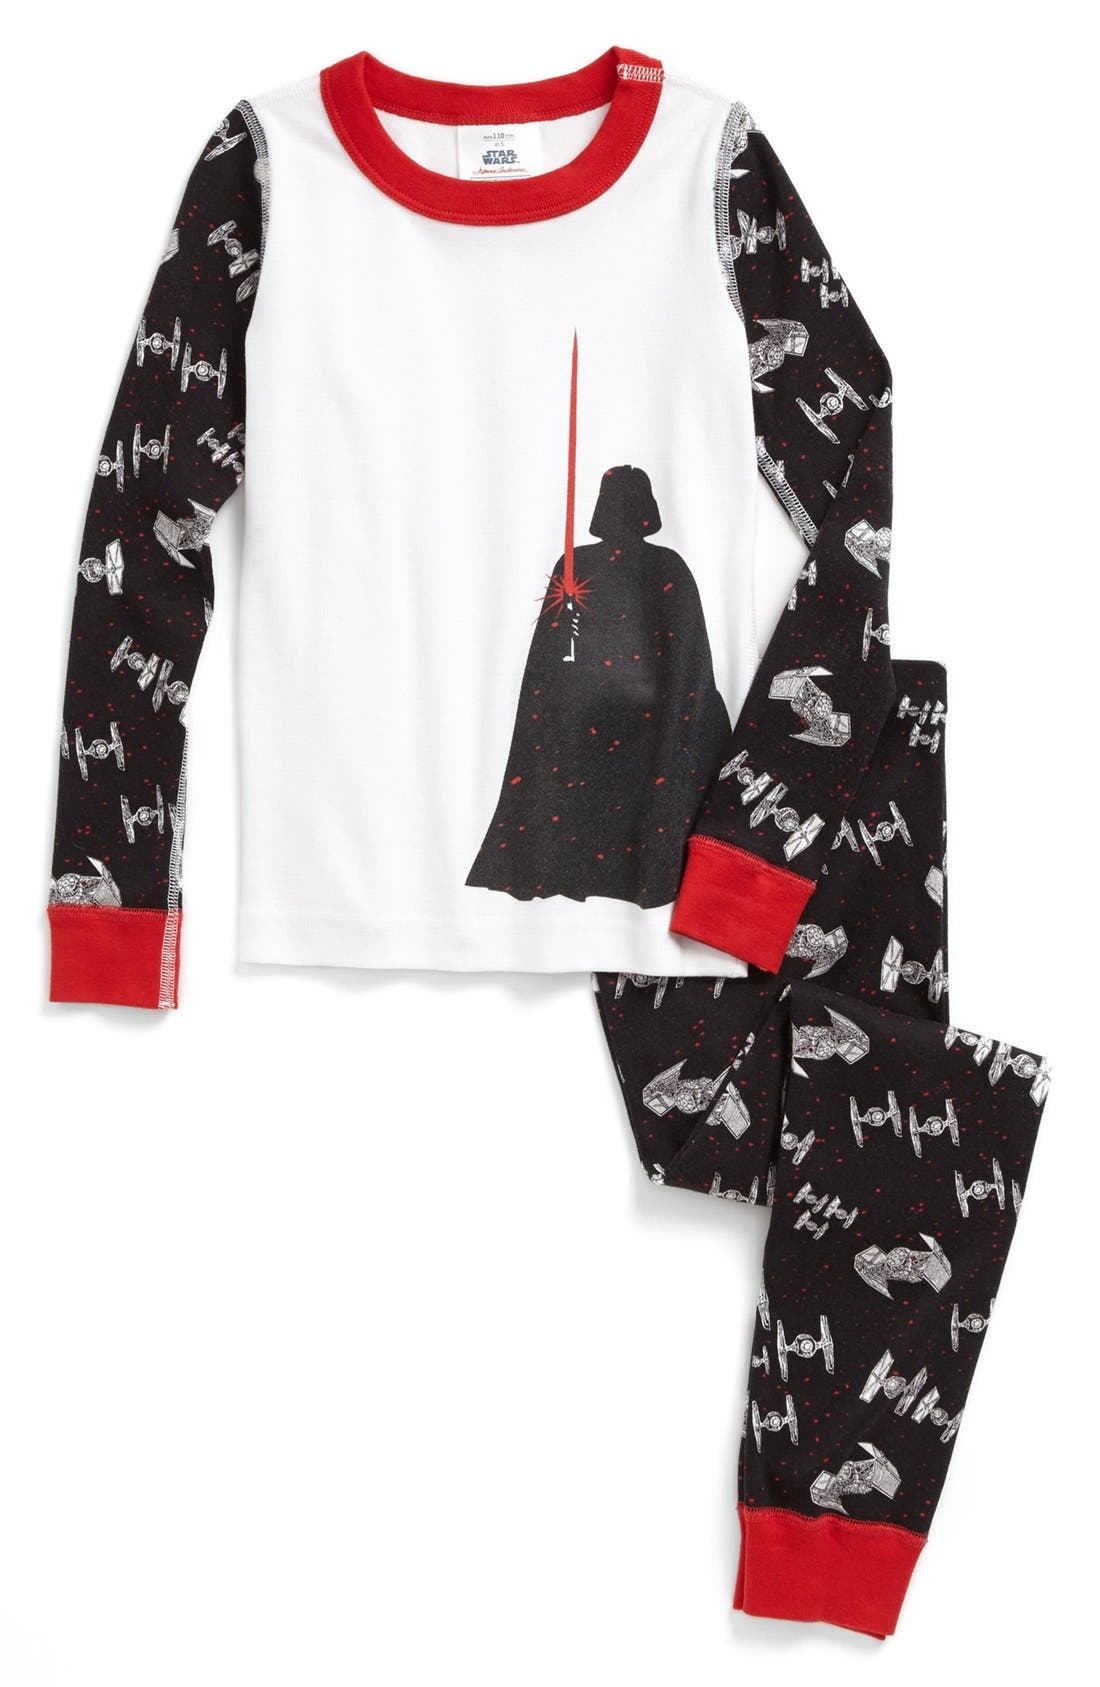 Alternate Image 1 Selected - Hanna Andersson 'Star Wars™ - Darth's Light' Two-Piece Fitted Organic Cotton Pajamas (Toddler Boys)